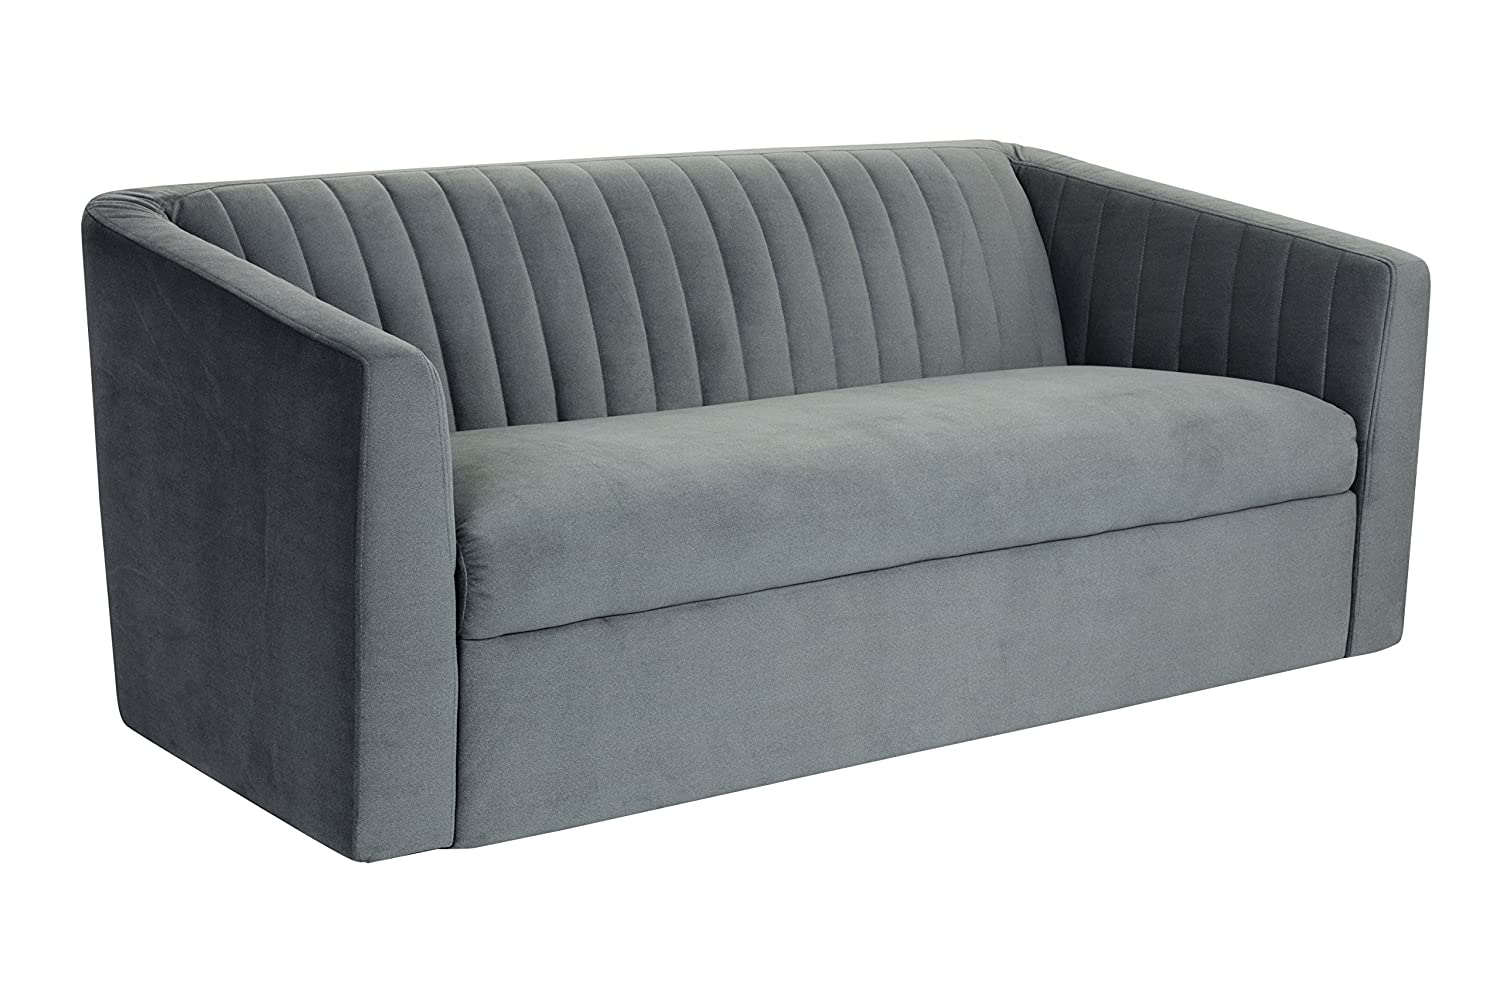 Amazon.com: Sunpan Modern 101323 5West Sofas, Granite ...